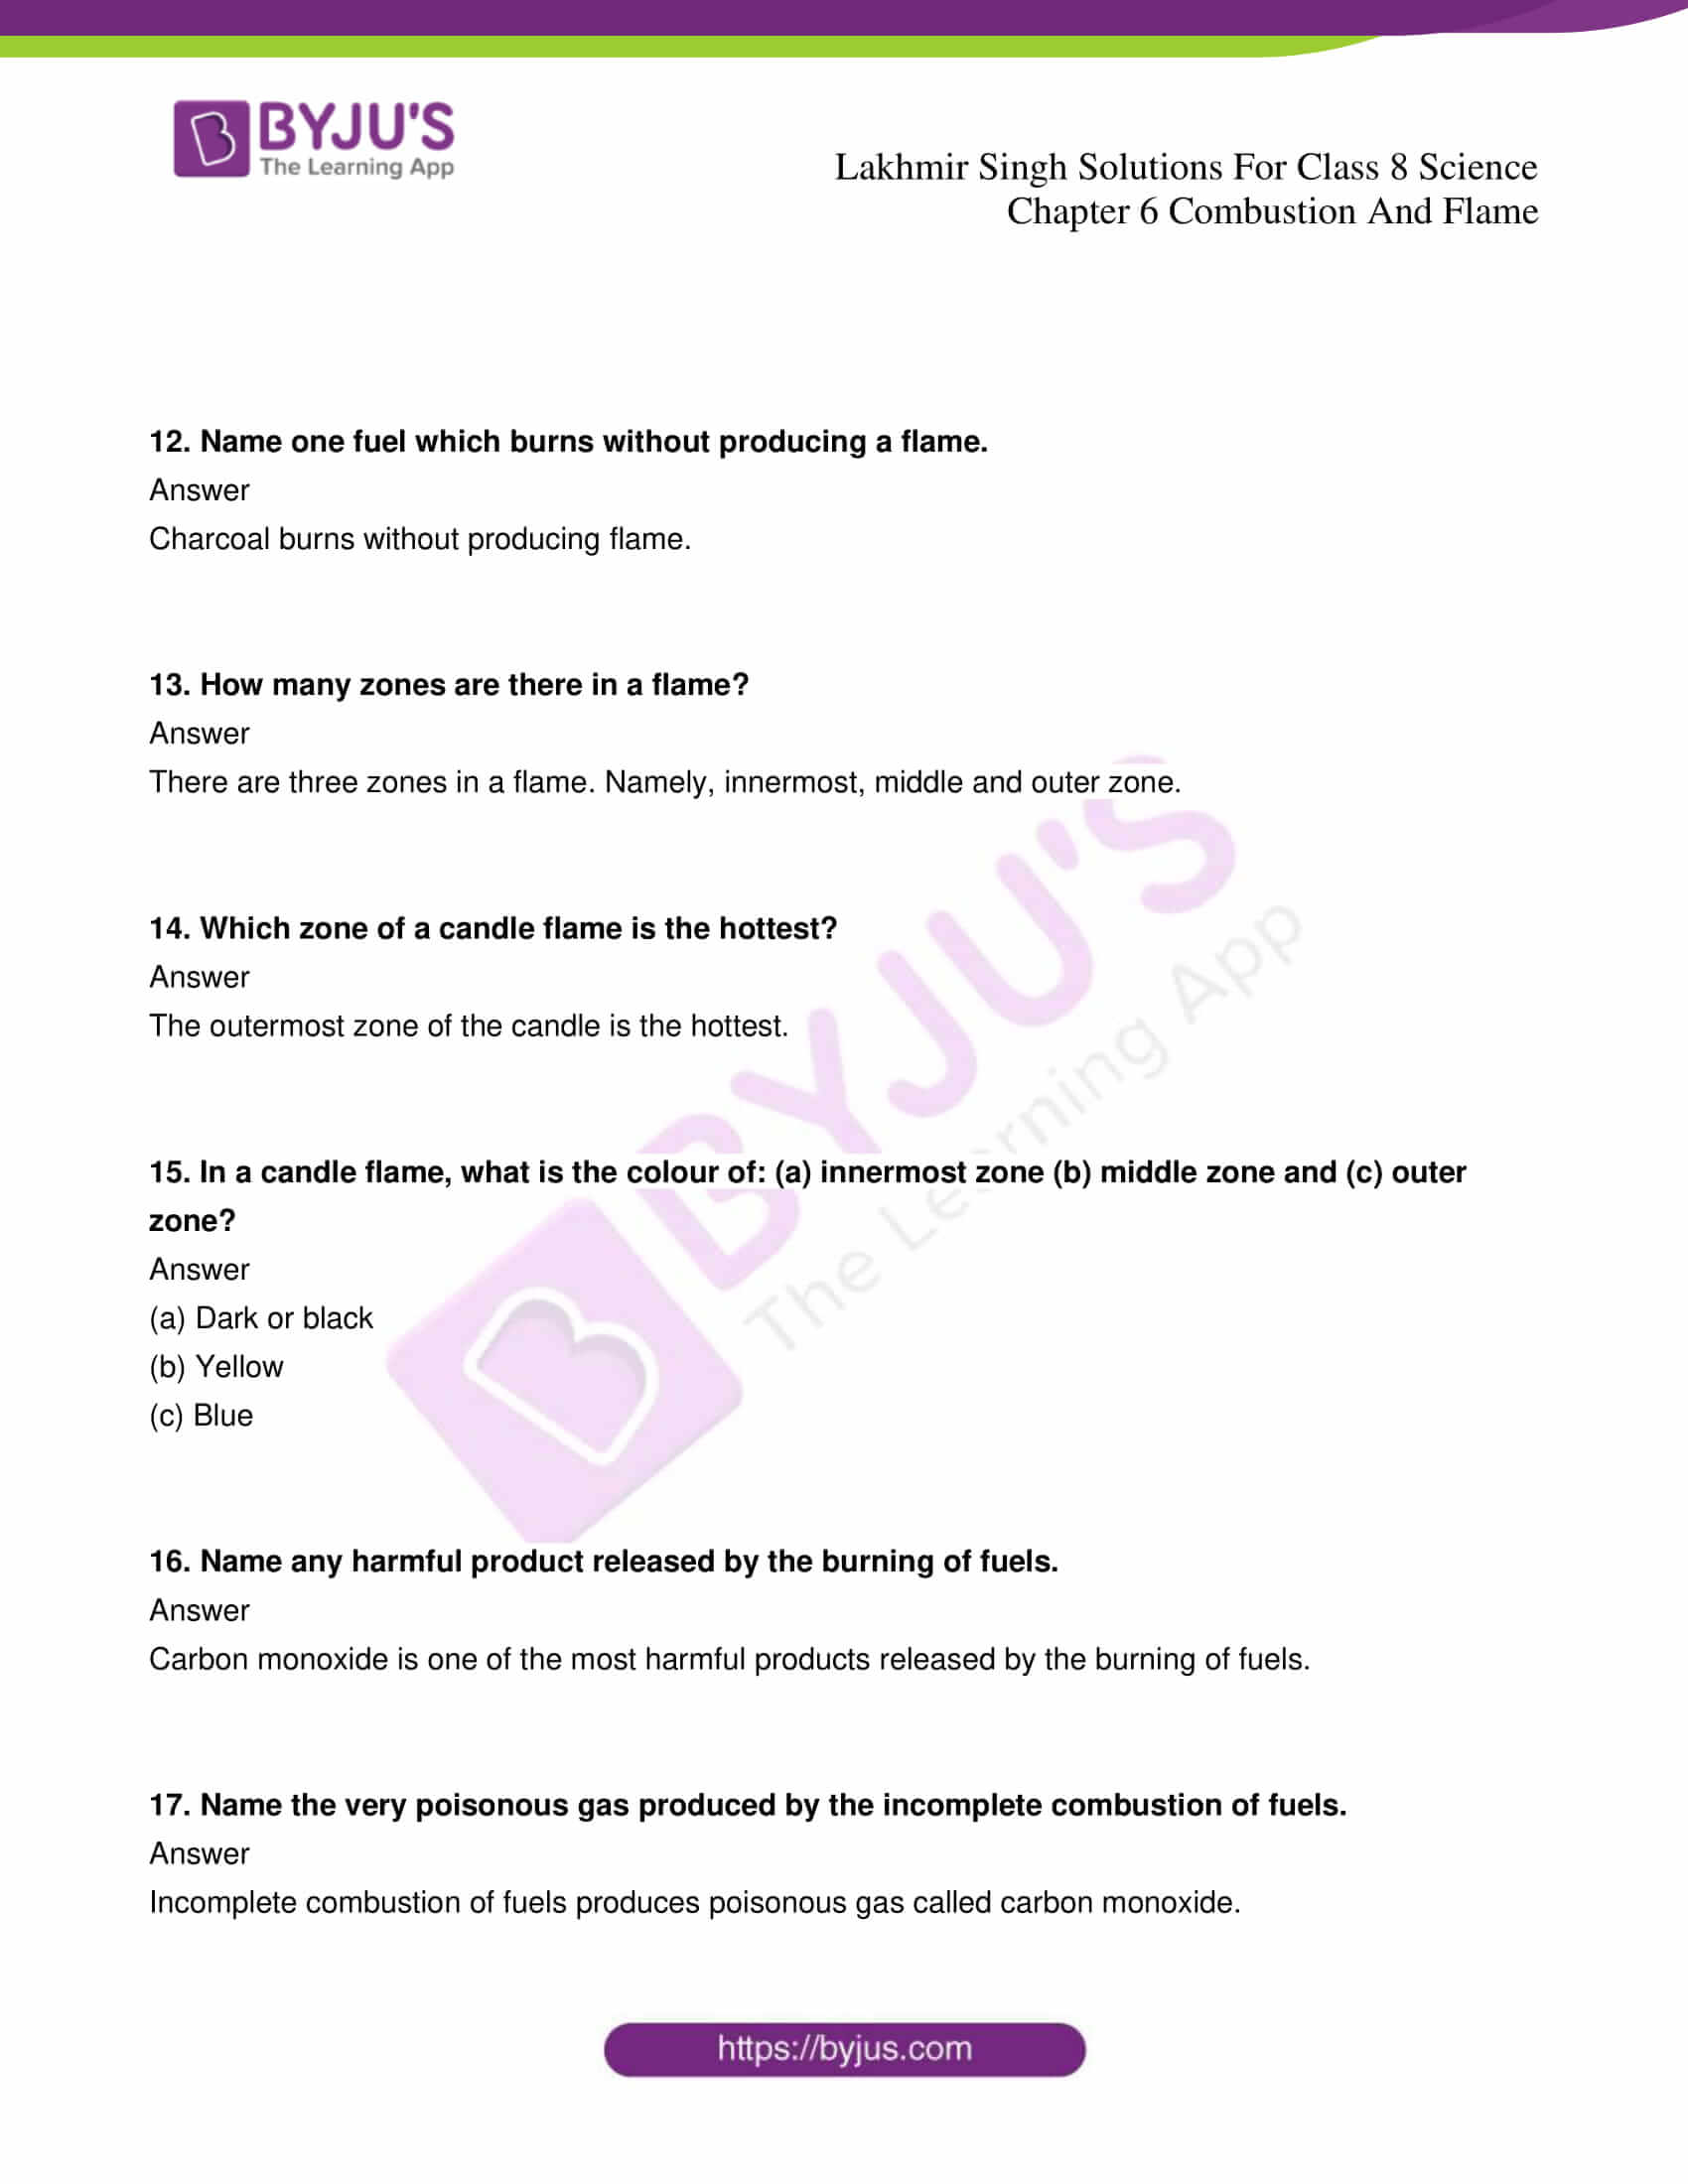 lakhmir singh solutions for class 8 science chapter 6 03